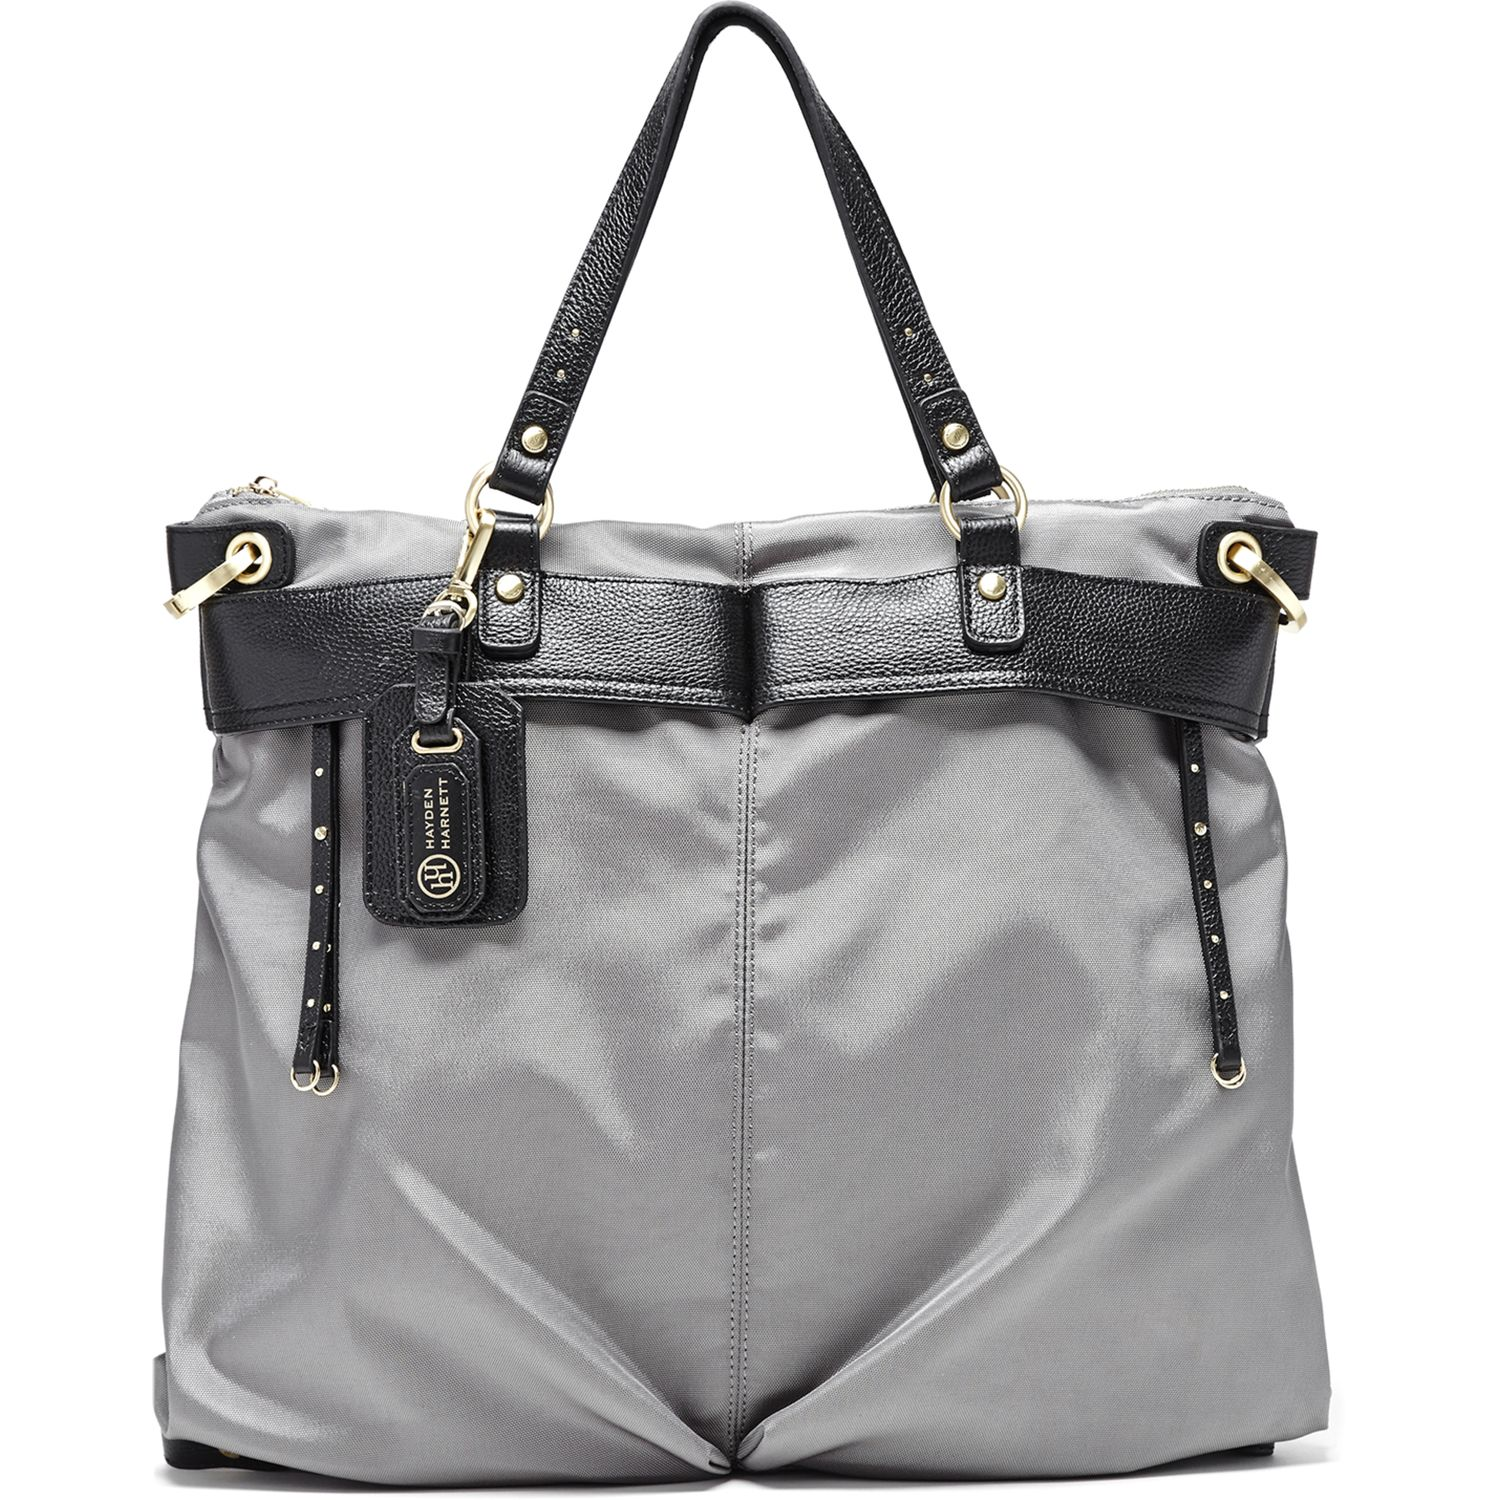 Ibiza Flight Tote, Silvered Grey - Hayden-Harnett Handbags & Accessories Online Store